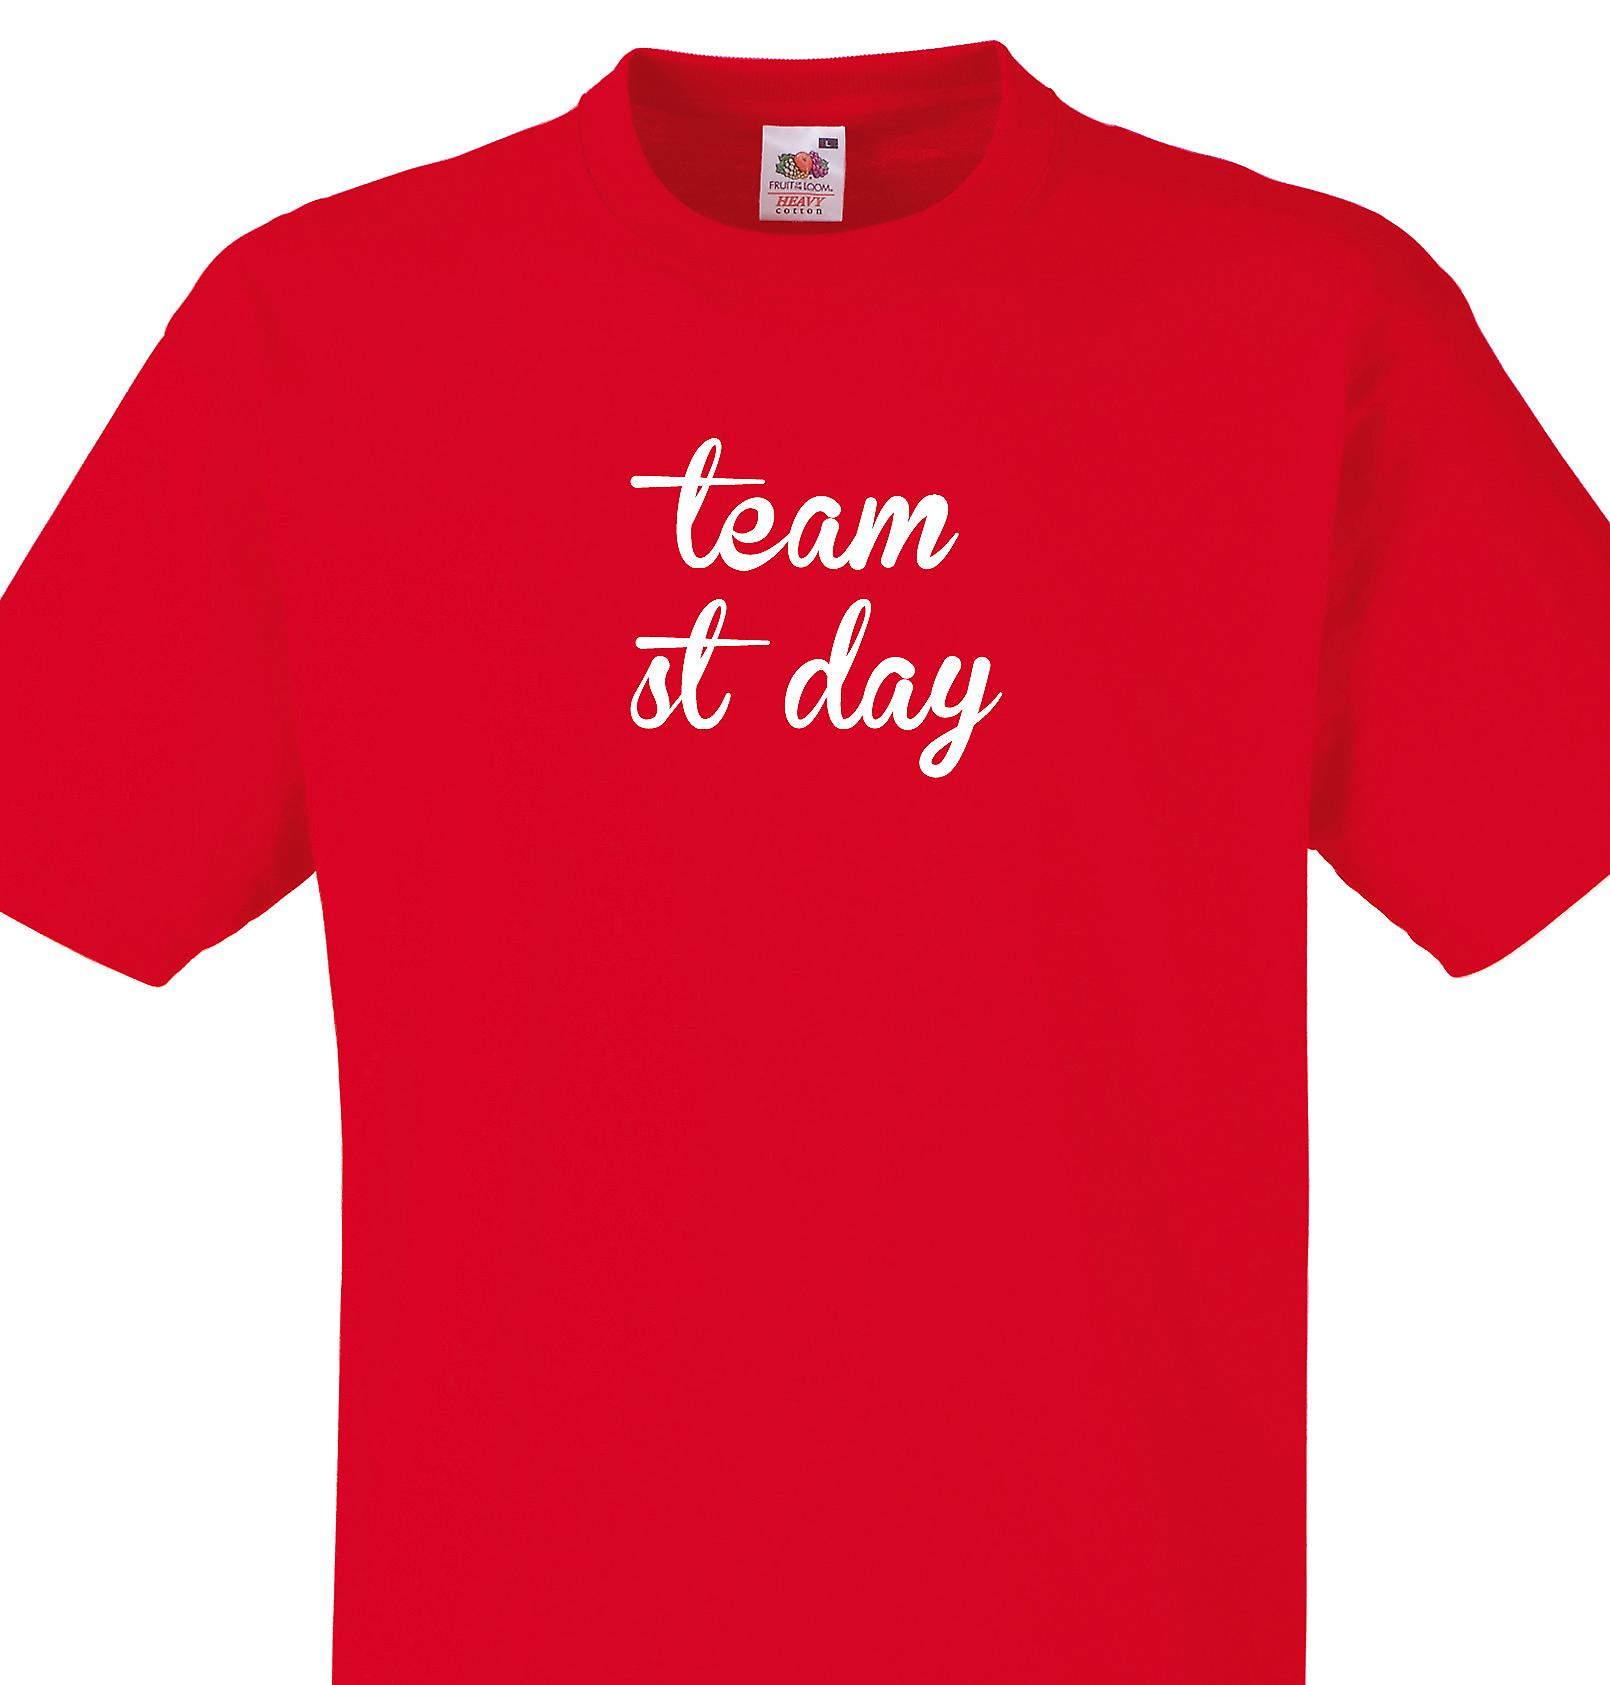 Team St day Red T shirt